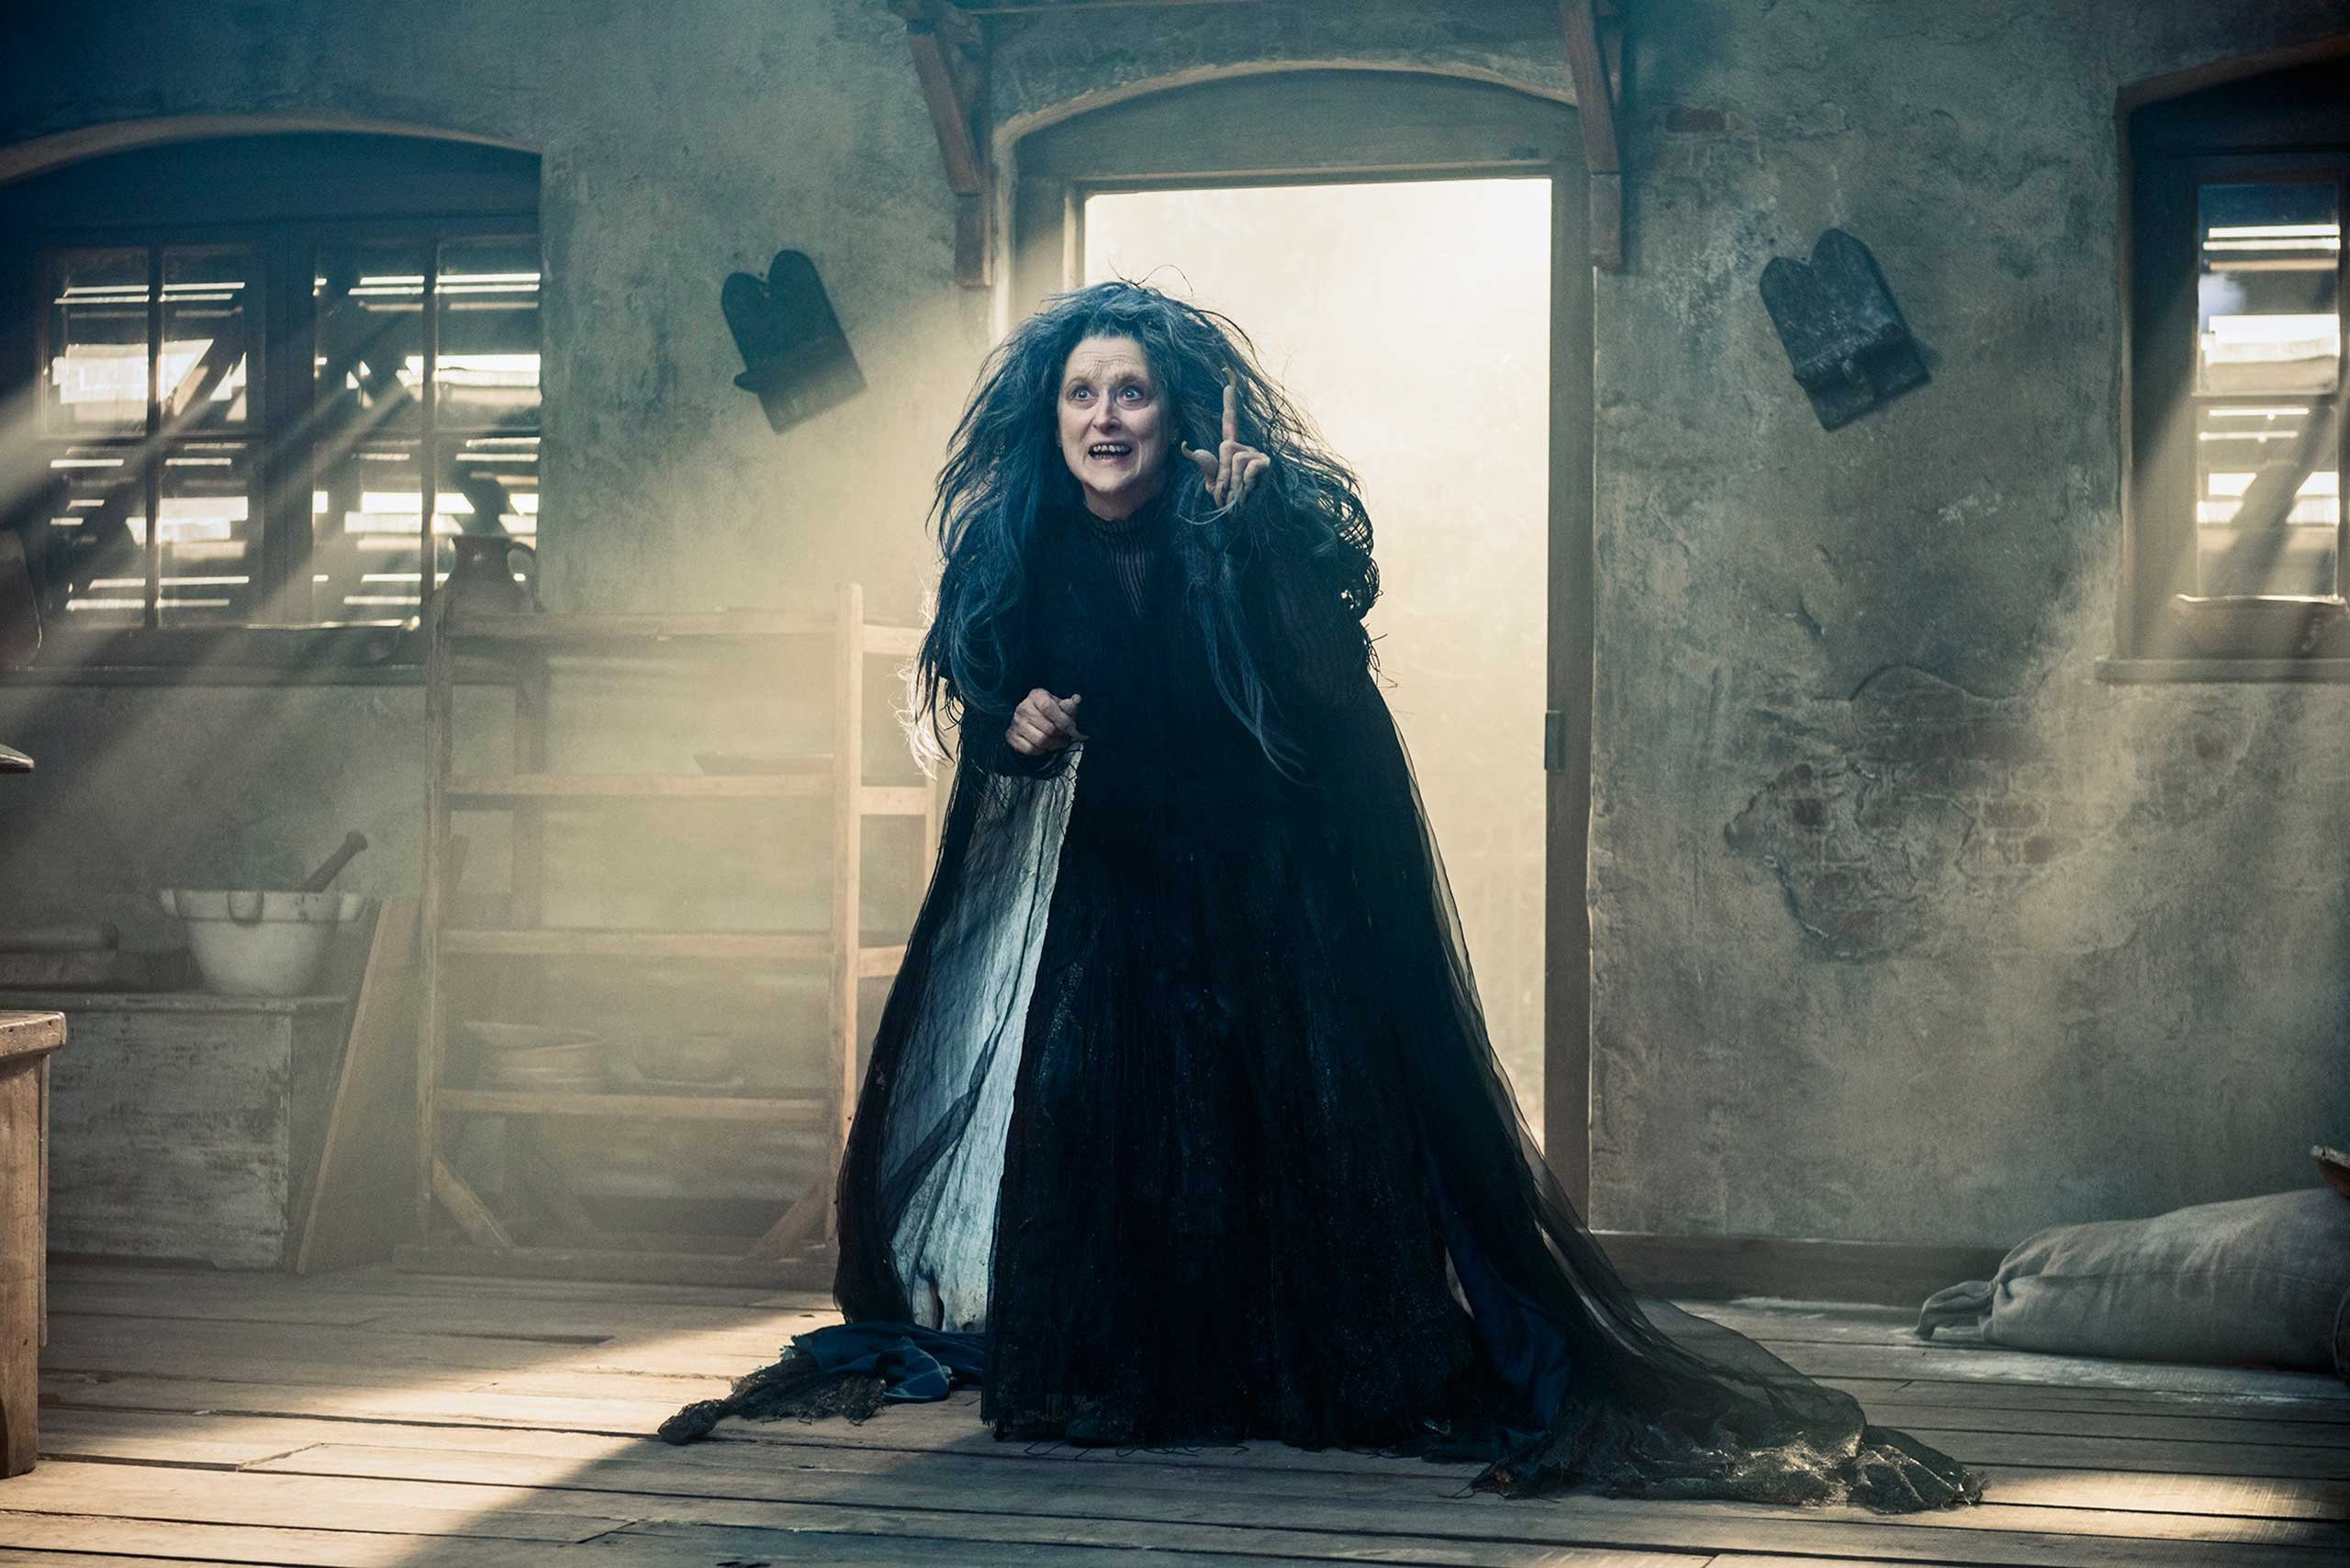 Meryl Streep stars as the Witch in Disney's Into the Woods